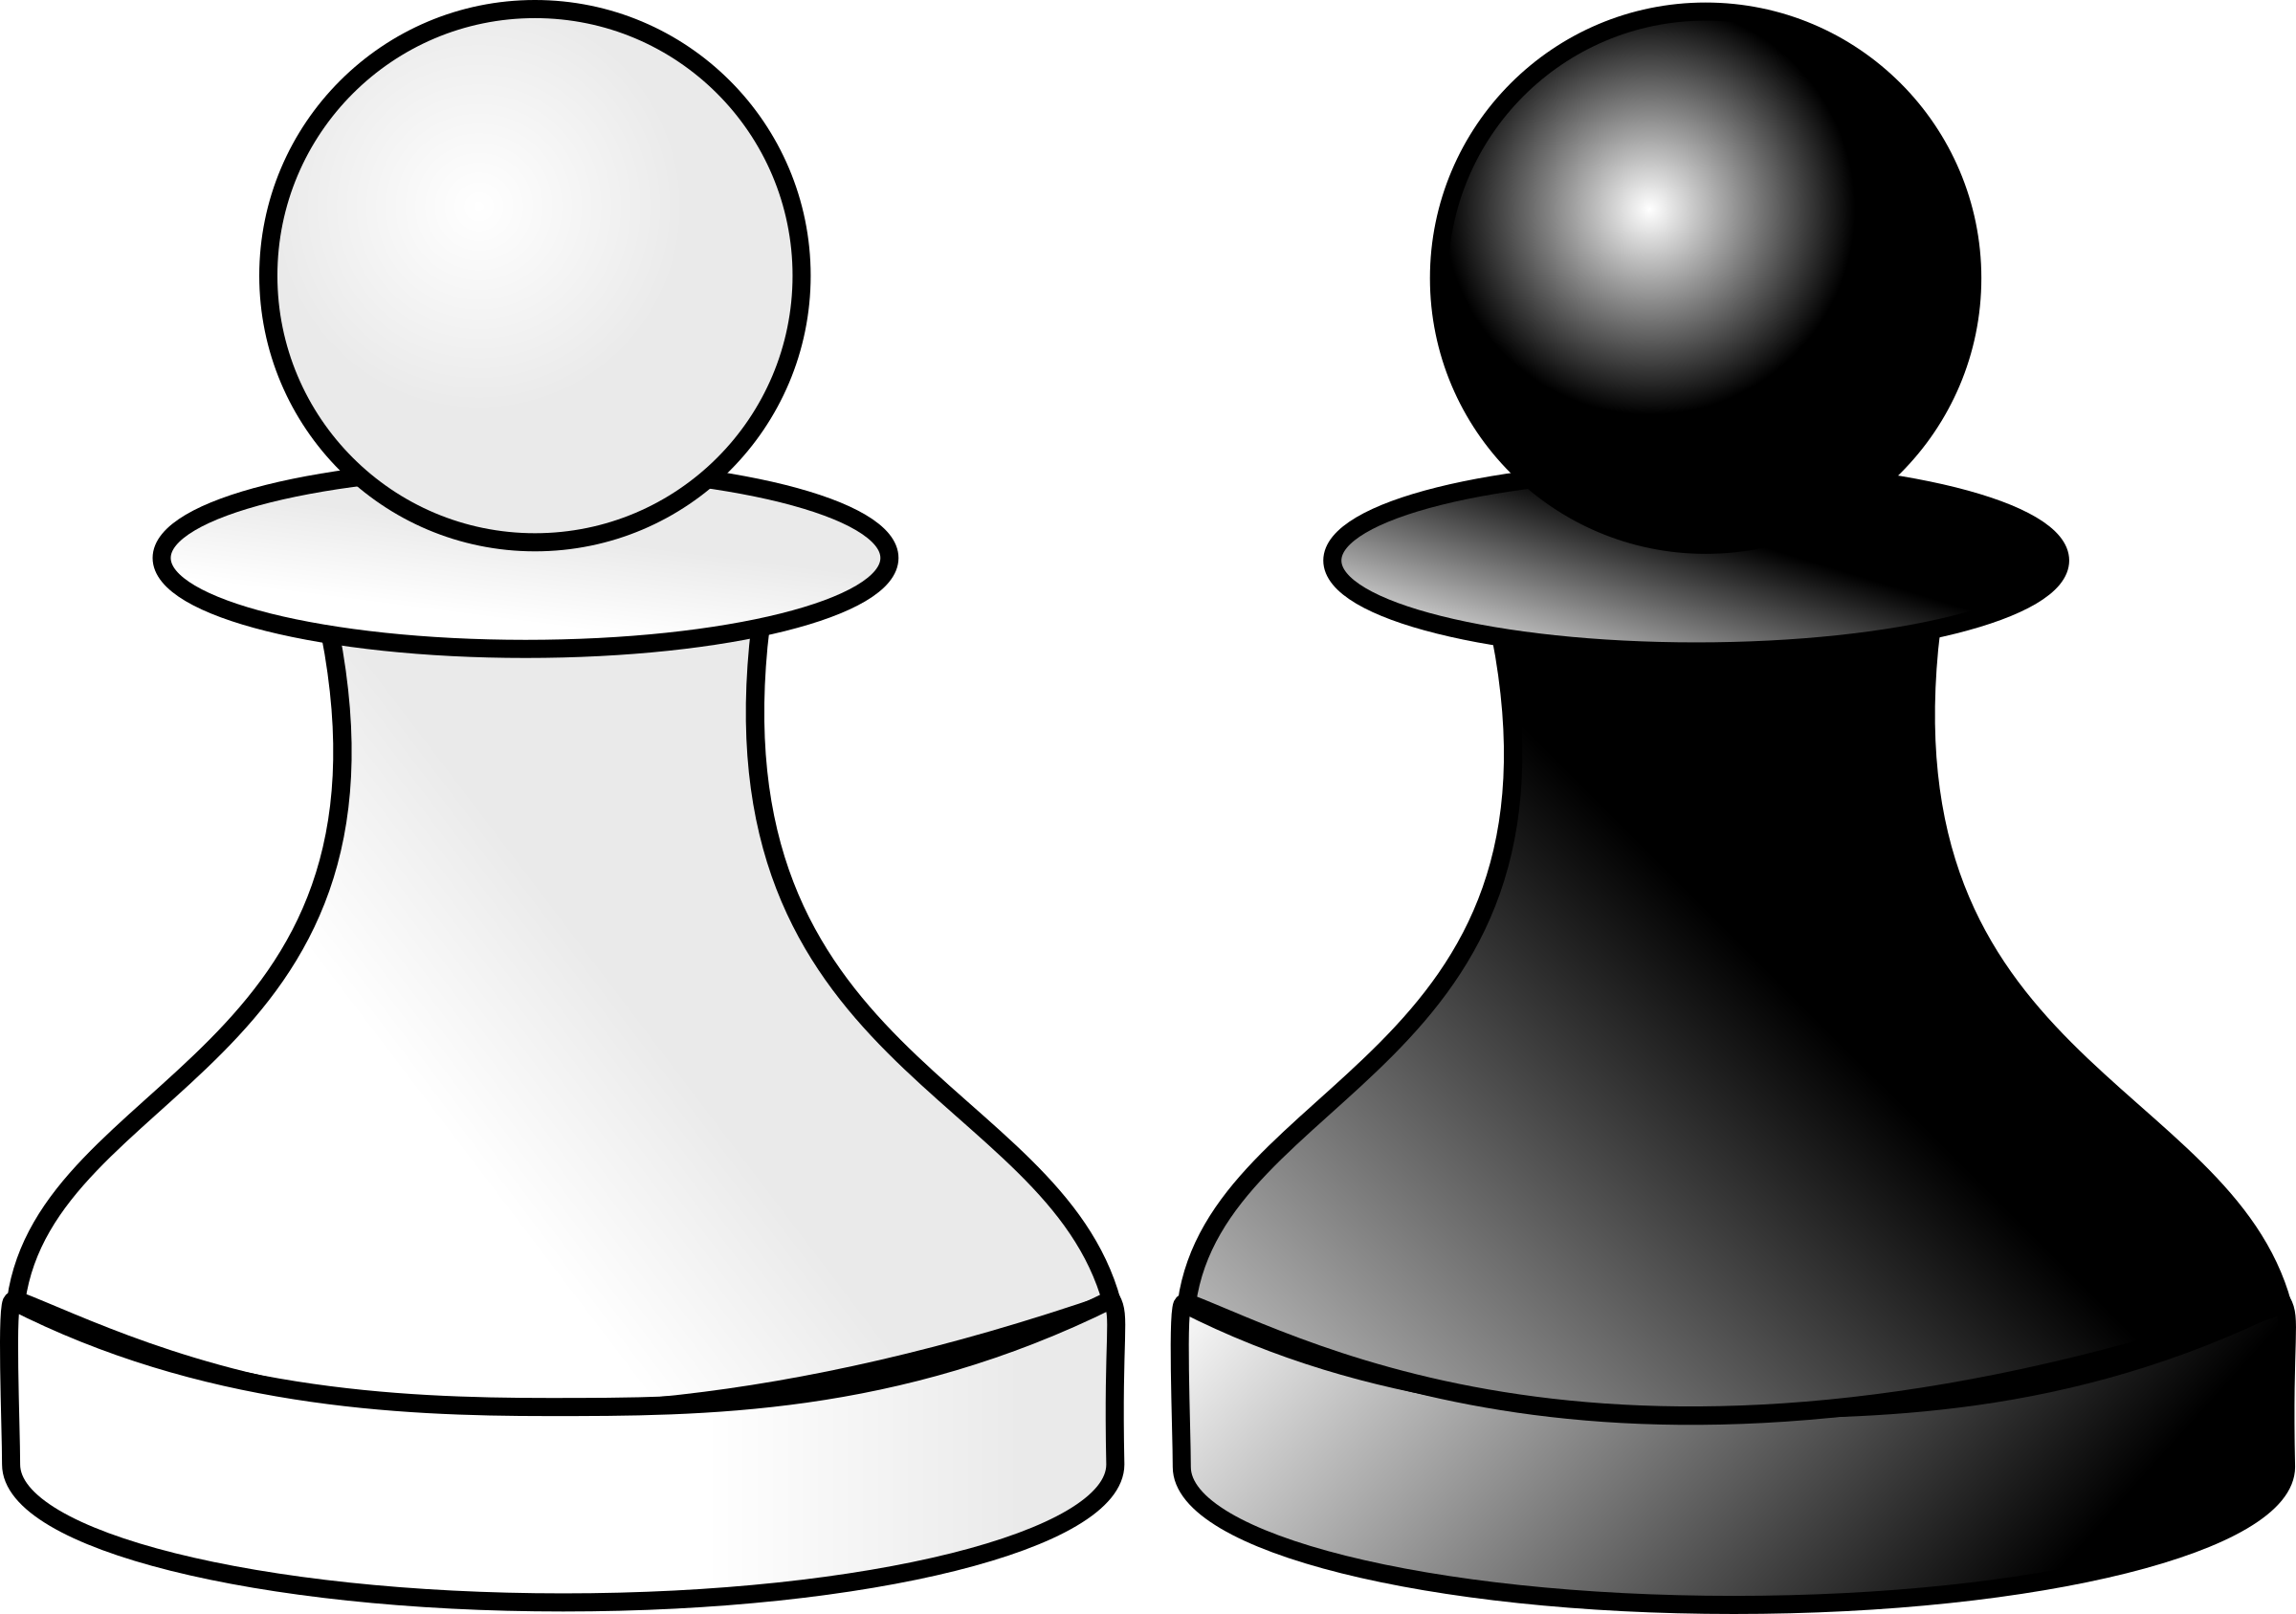 Pawns d big image. R clipart black and white